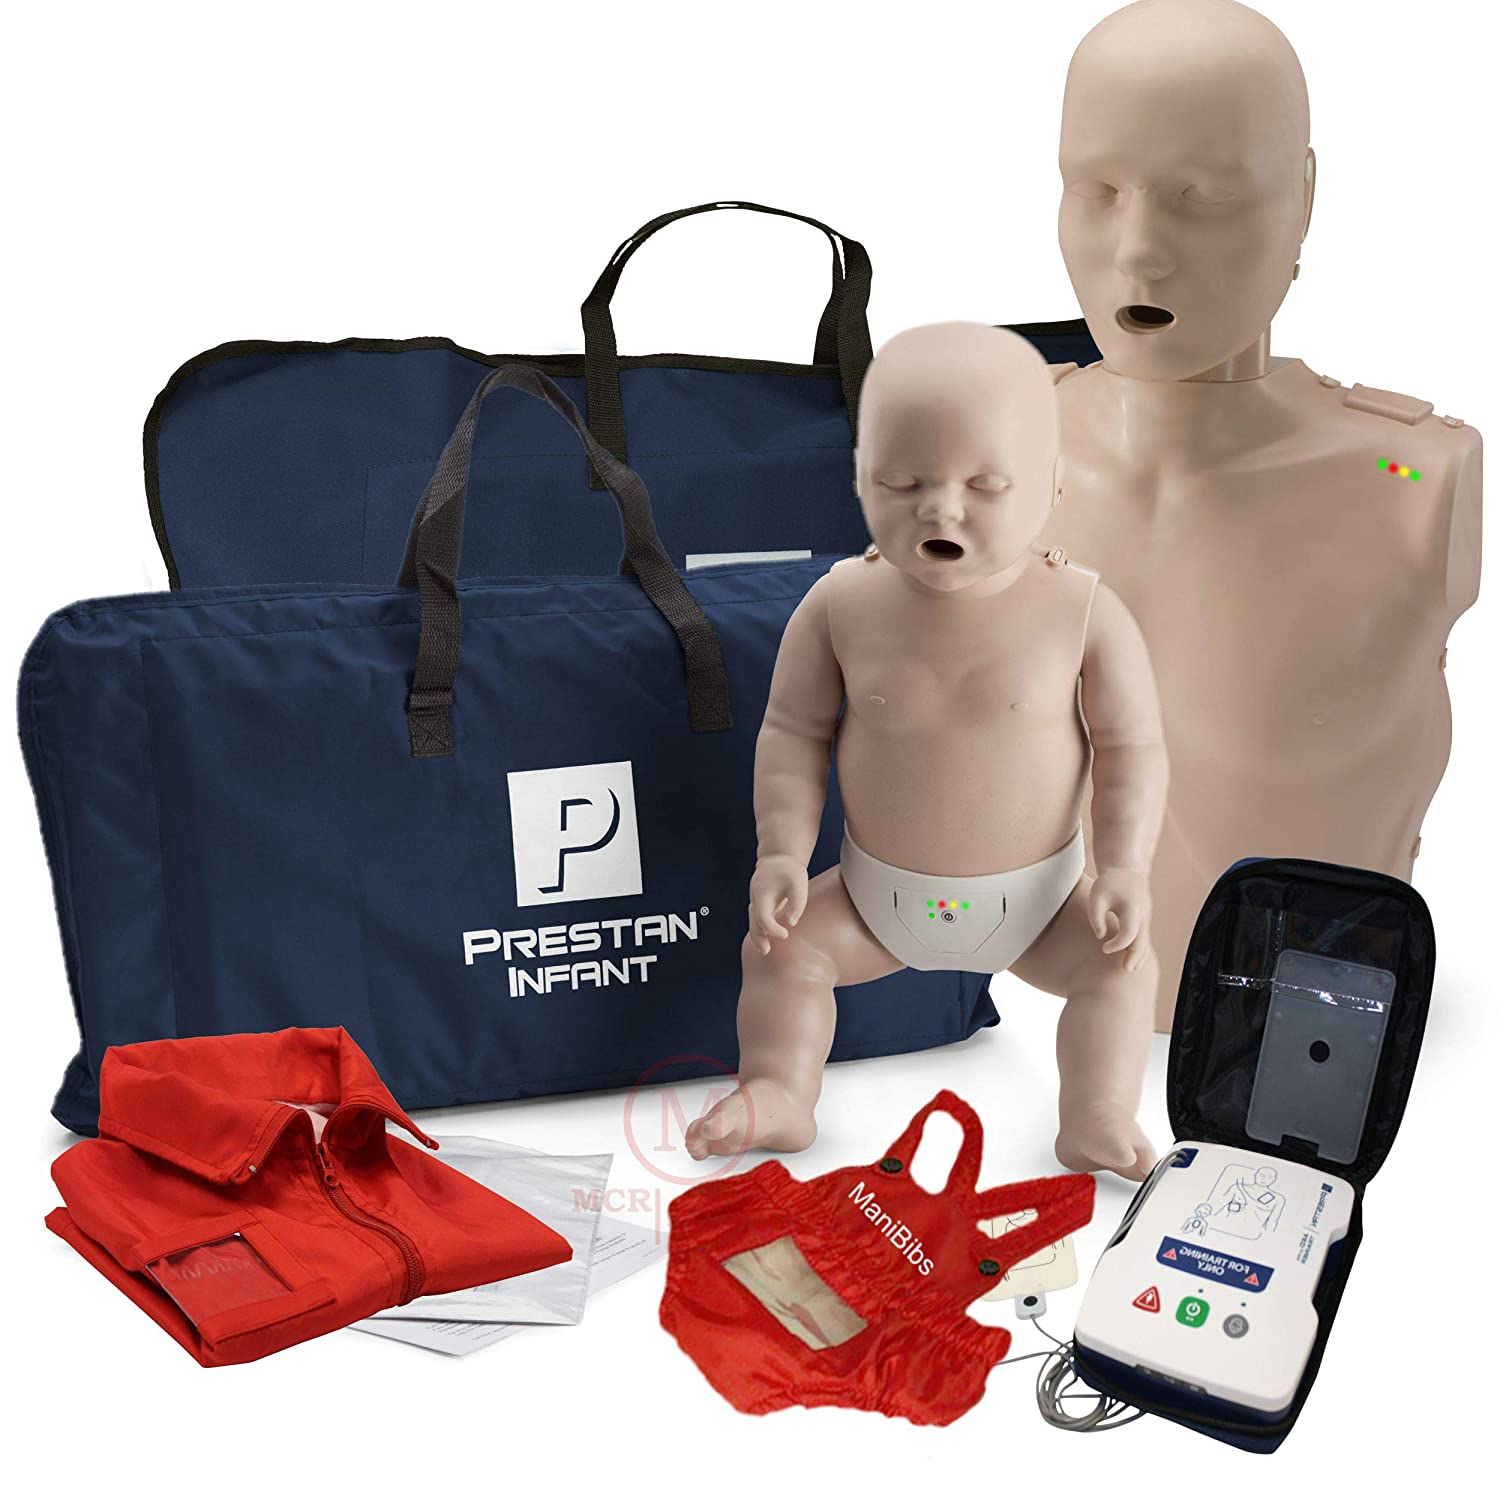 Adult and Infant CPR Manikin Kit with Feedback, Prestan UltraTrainer, and MCR Accessories - Tns super store